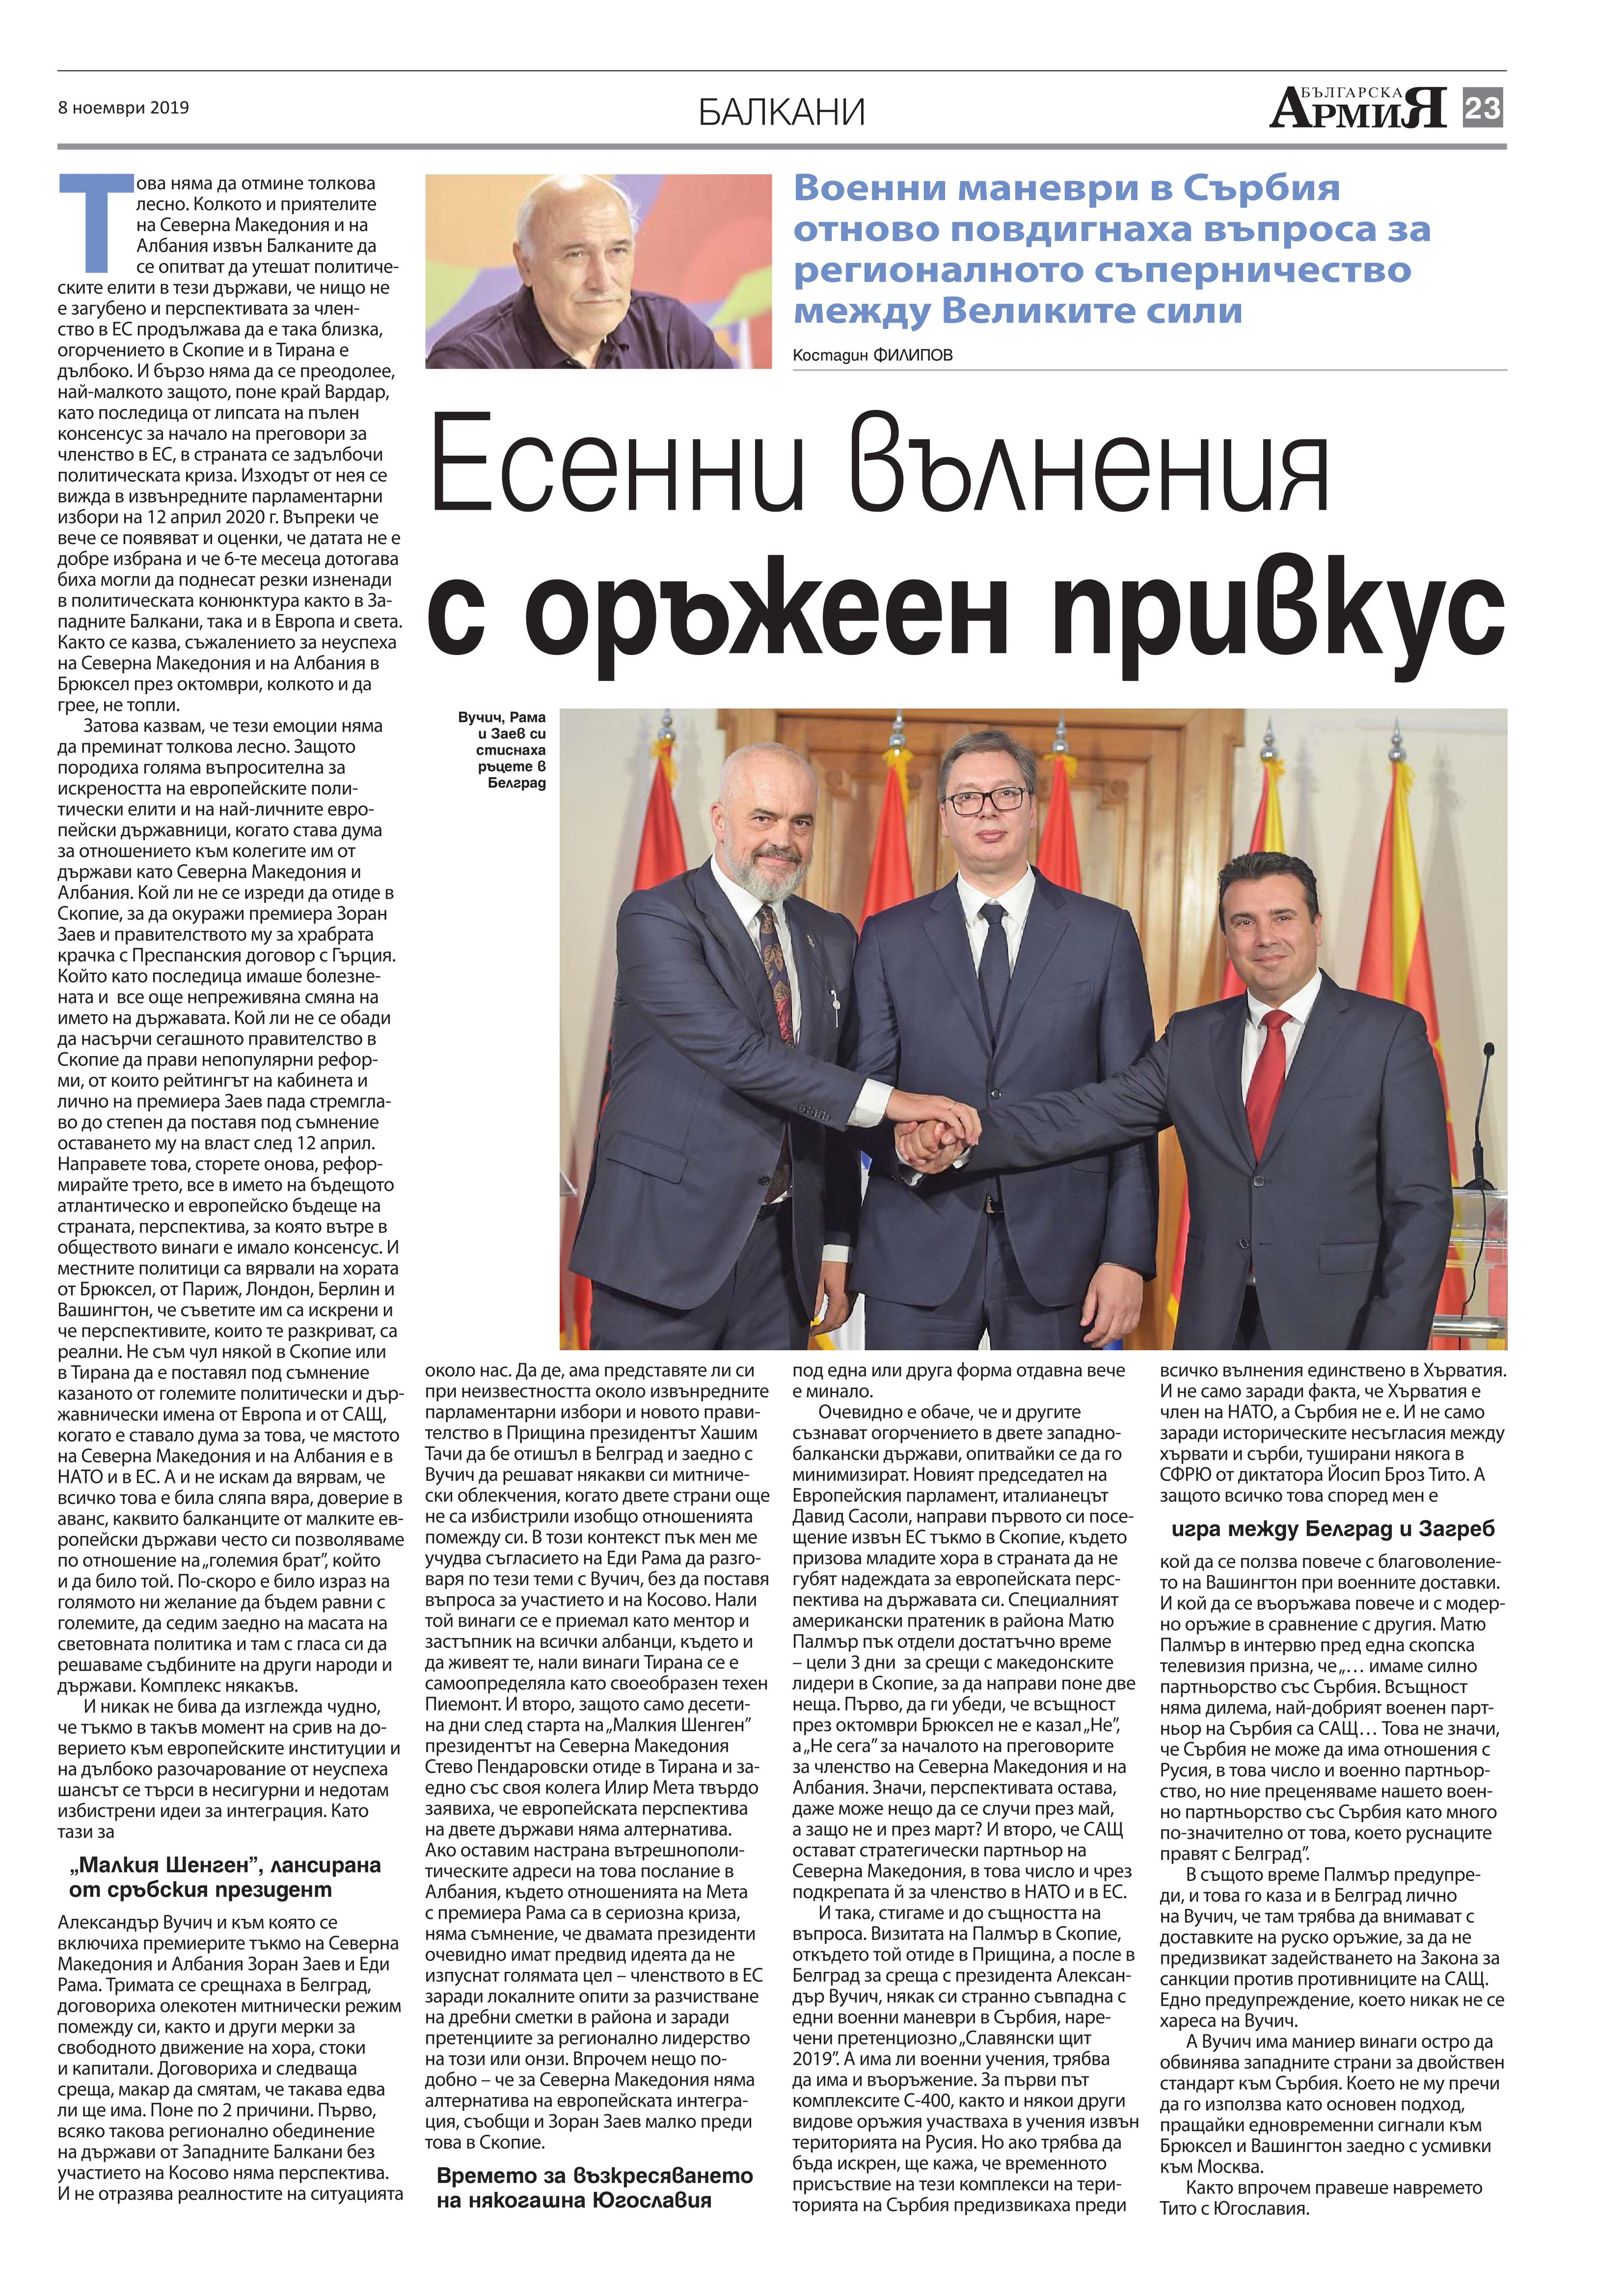 https://www.armymedia.bg/wp-content/uploads/2015/06/23.page1_-115.jpg